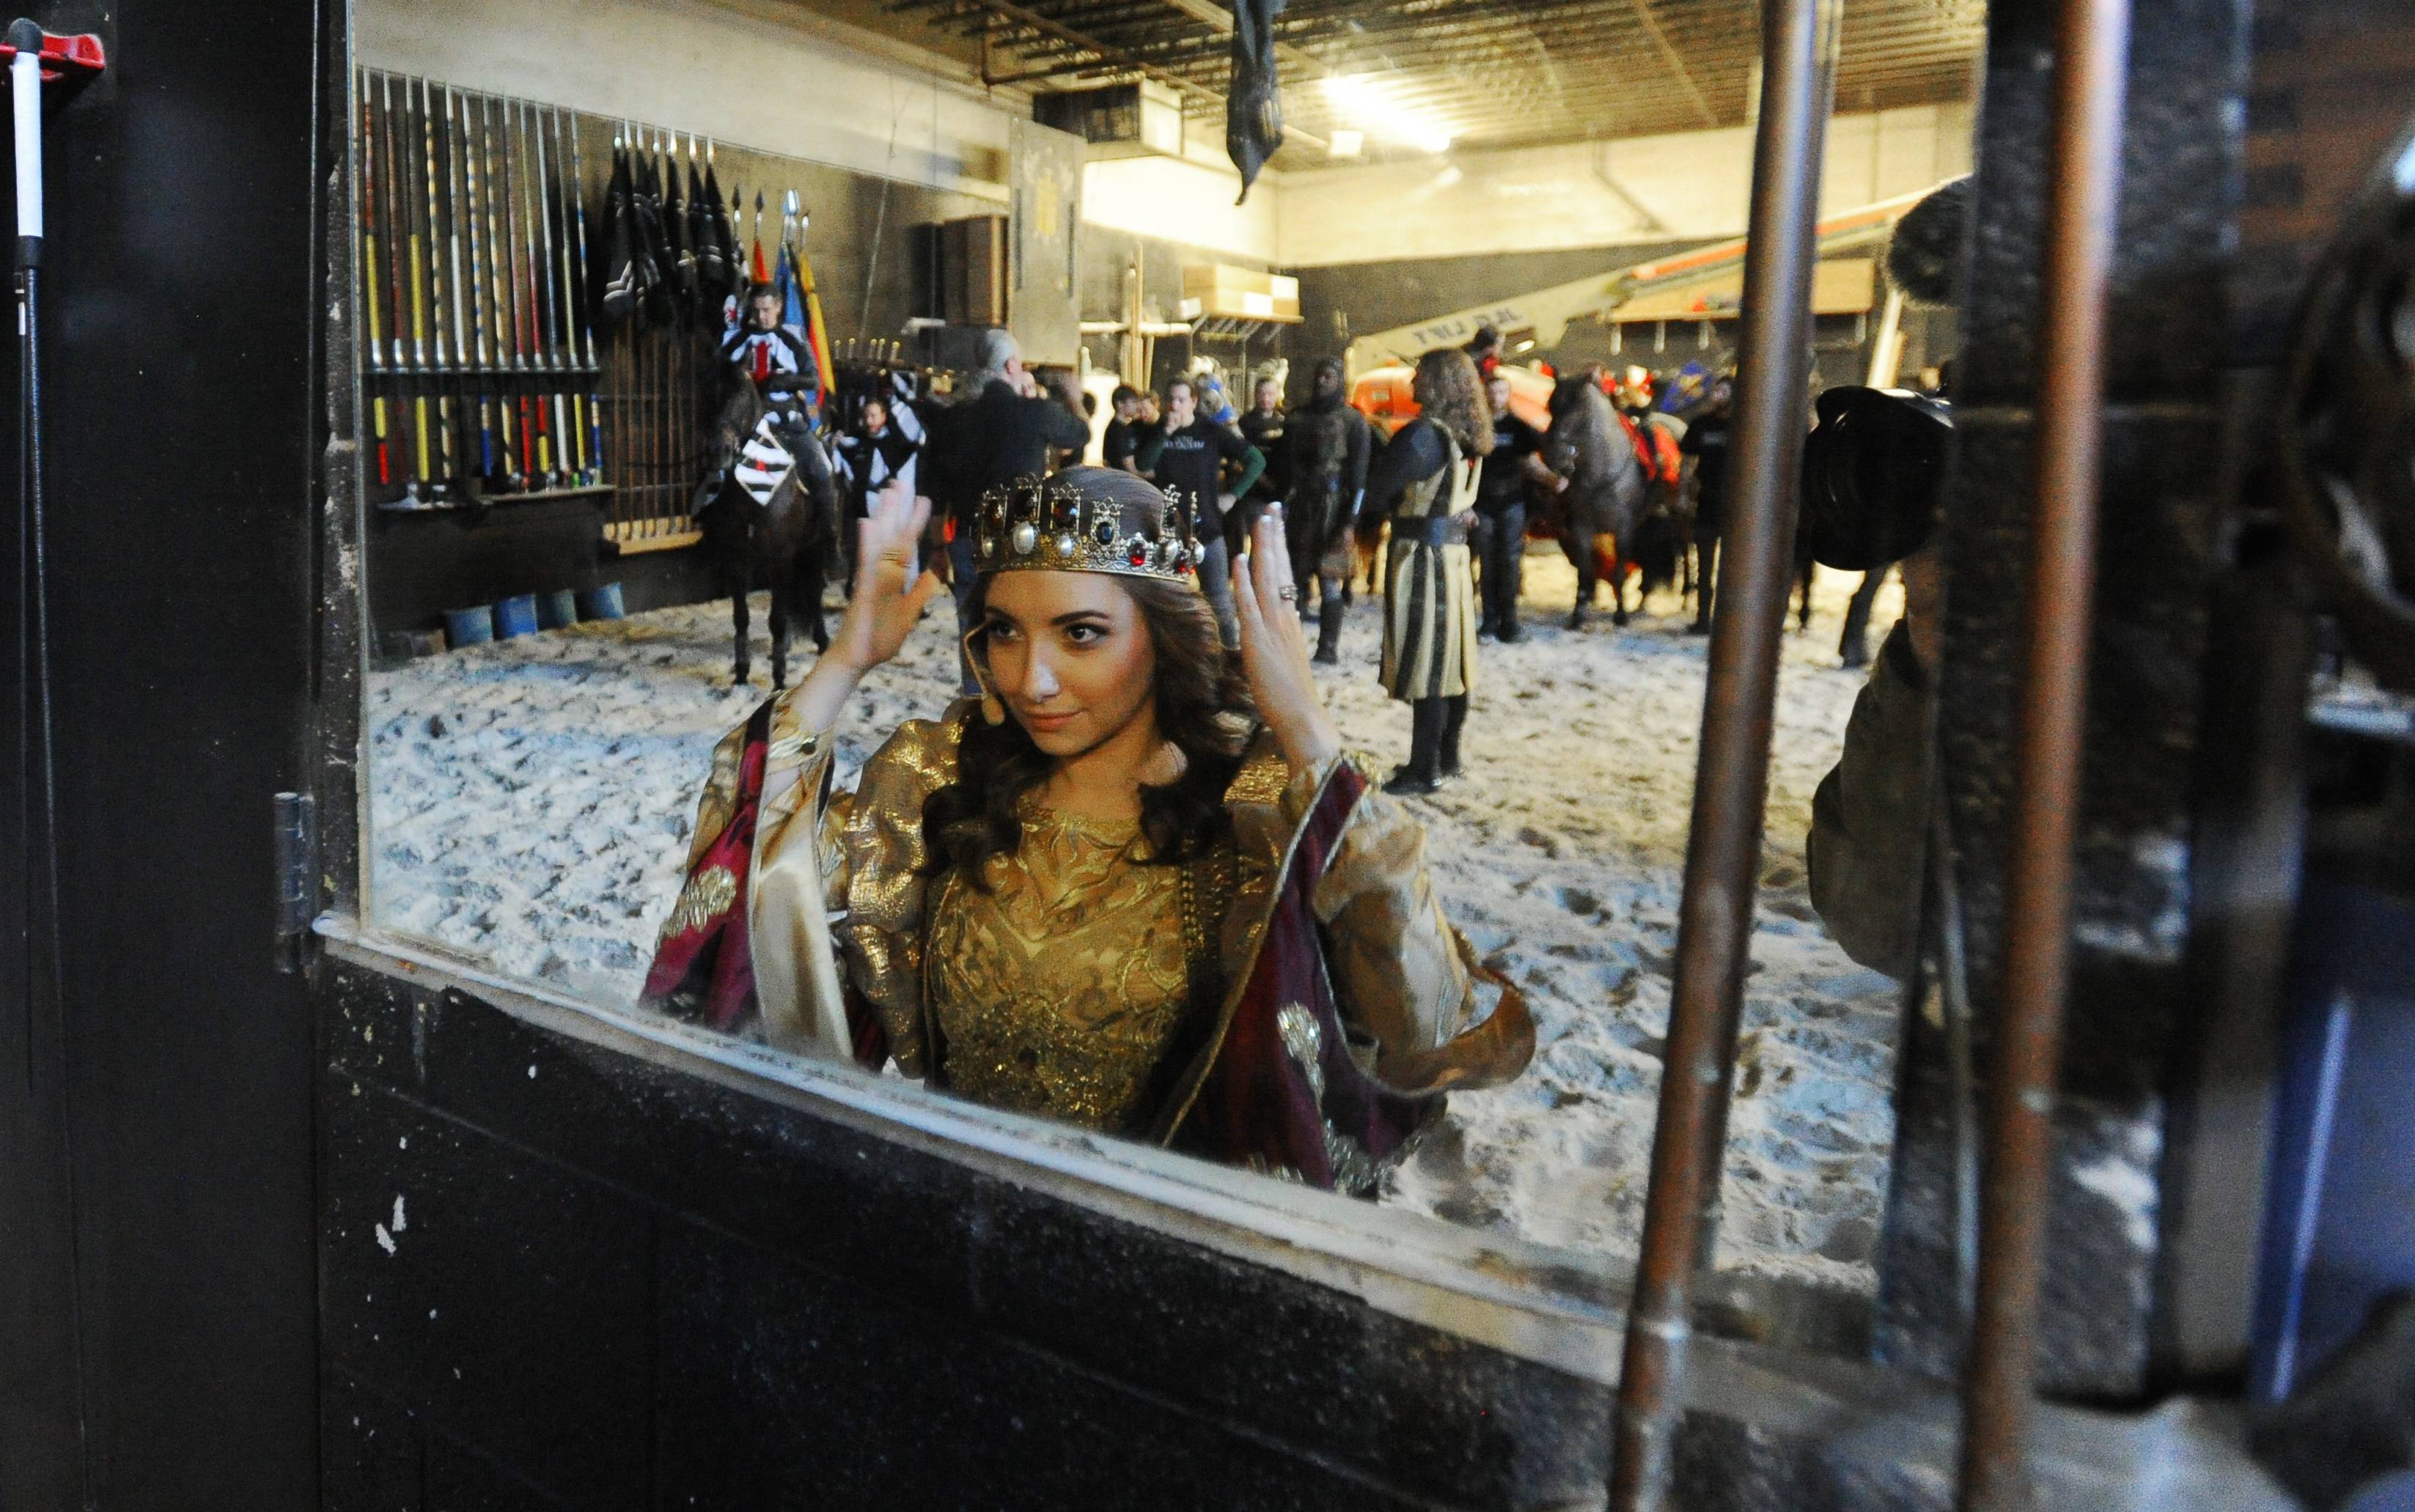 Sara Schubring, 24, prepares herself backstage for a new show at Medieval Times, where she will rule as queen.